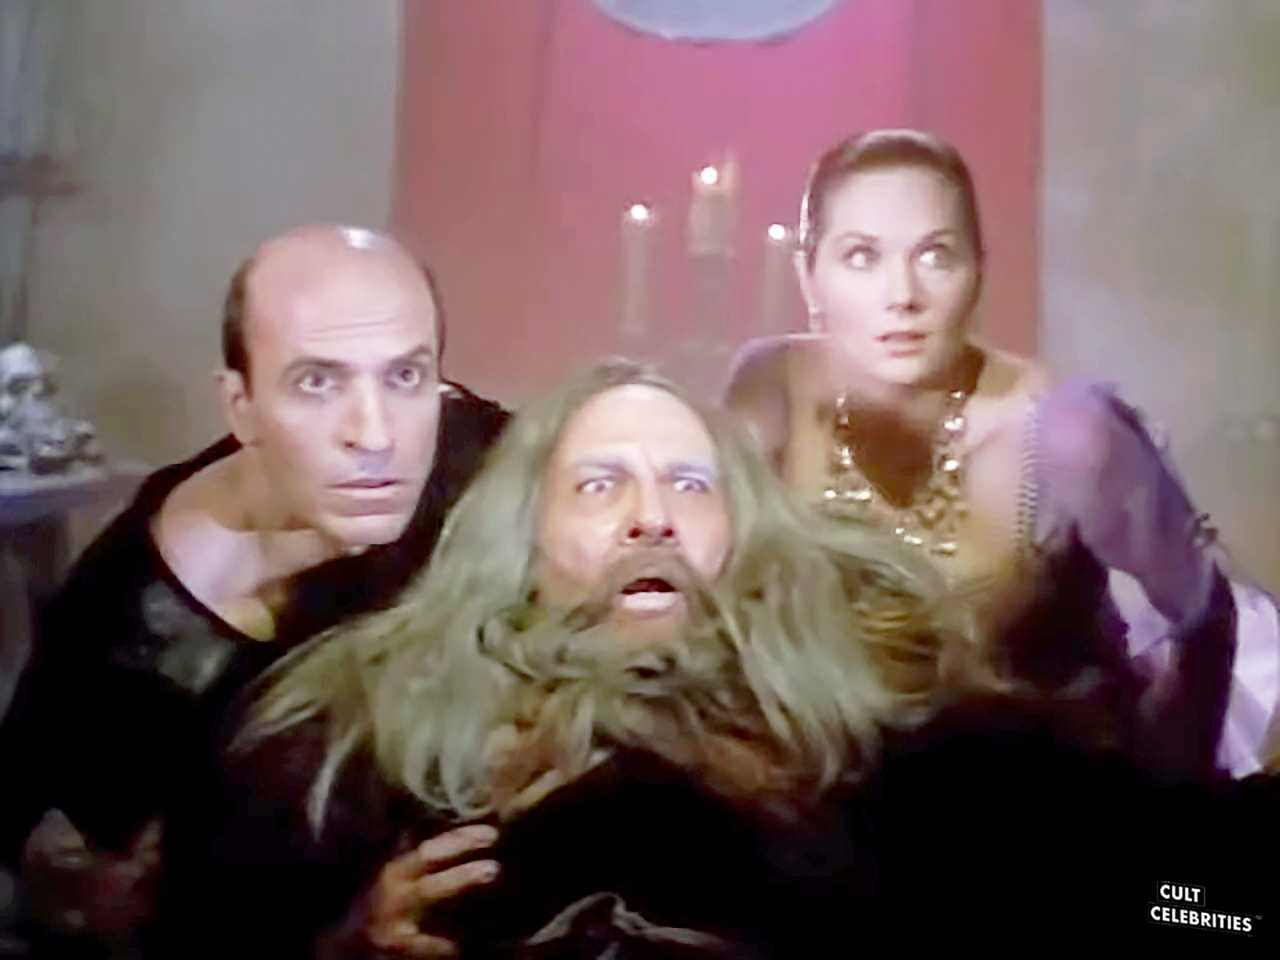 Terri Treas, Agustín Salvat and Thom Christopher in Deathstalker and the Warriors from Hell (1988)